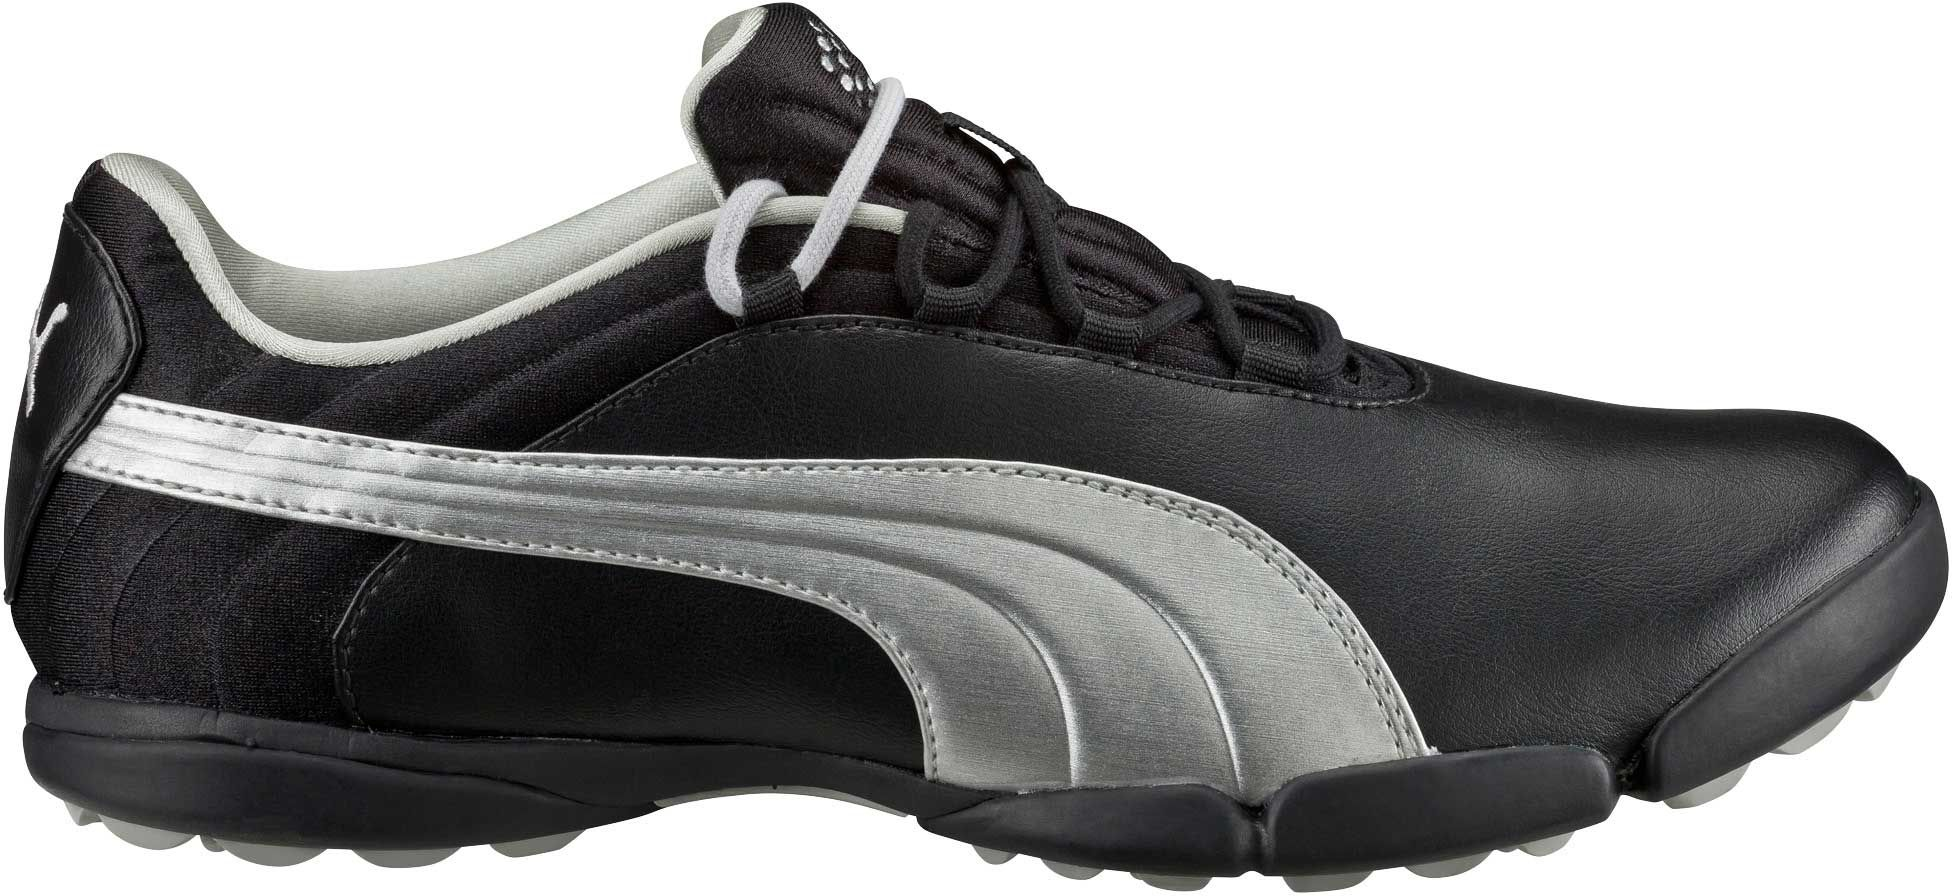 Puma Women S Sunnylite V2 Golf Shoes